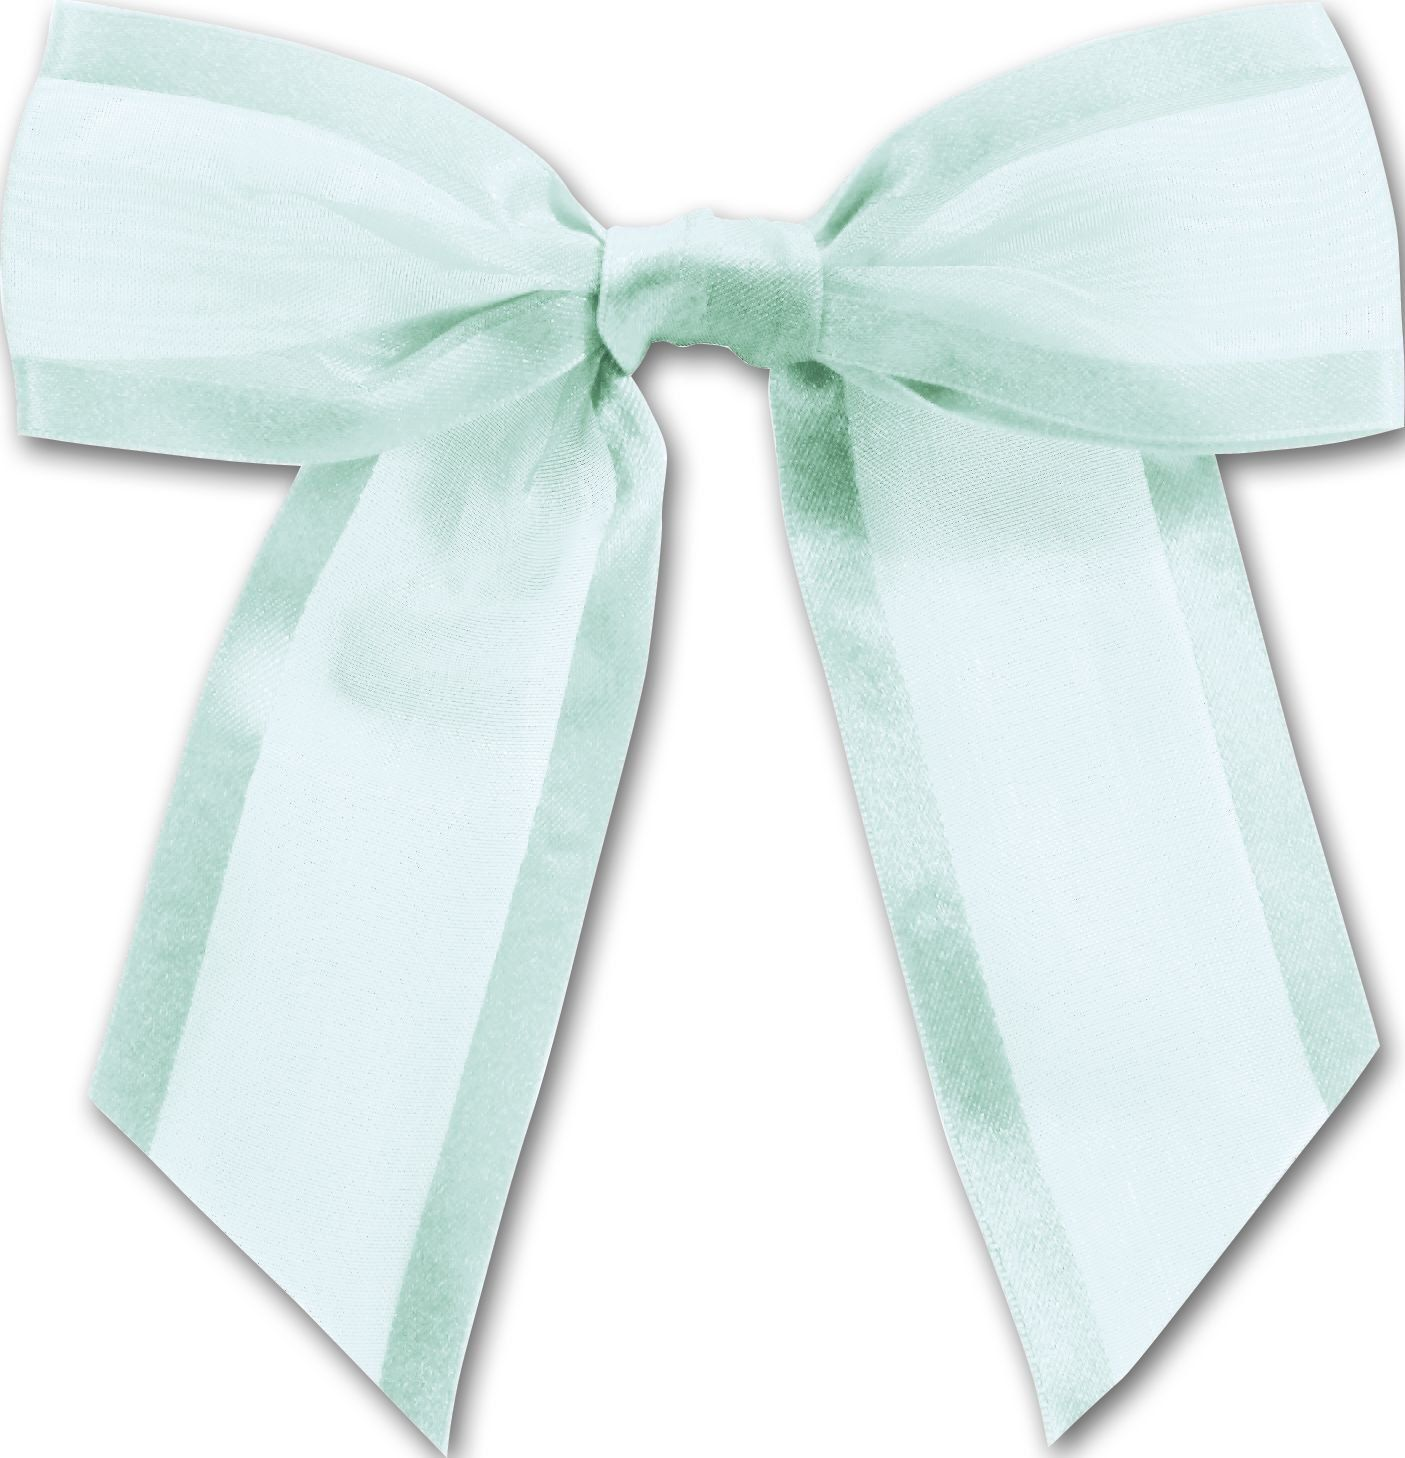 a0f1640fa67e Bows - Light Blue Pre-Tied Organza Bow, 4 1/2' Bow Tie (12 Bows) -  BOWS-BOW-244-20 *** Read more at the image link.